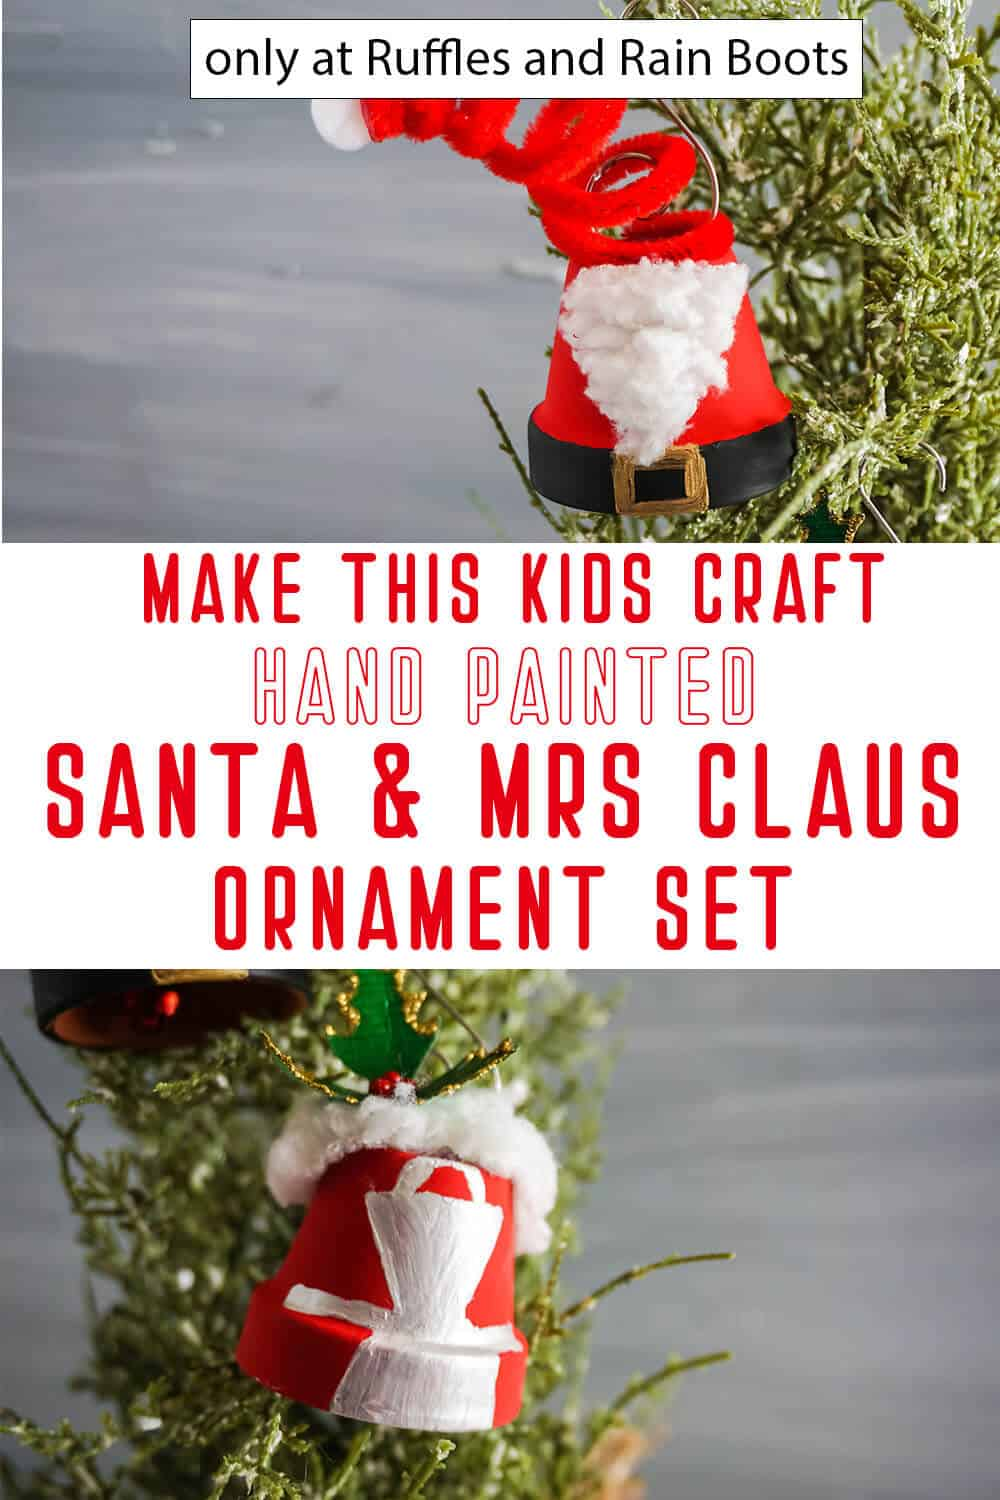 photo collage of santa and mrs claus christmas ornaments with text which reads make this kids craft hand painted santa & mrs claus ornament set